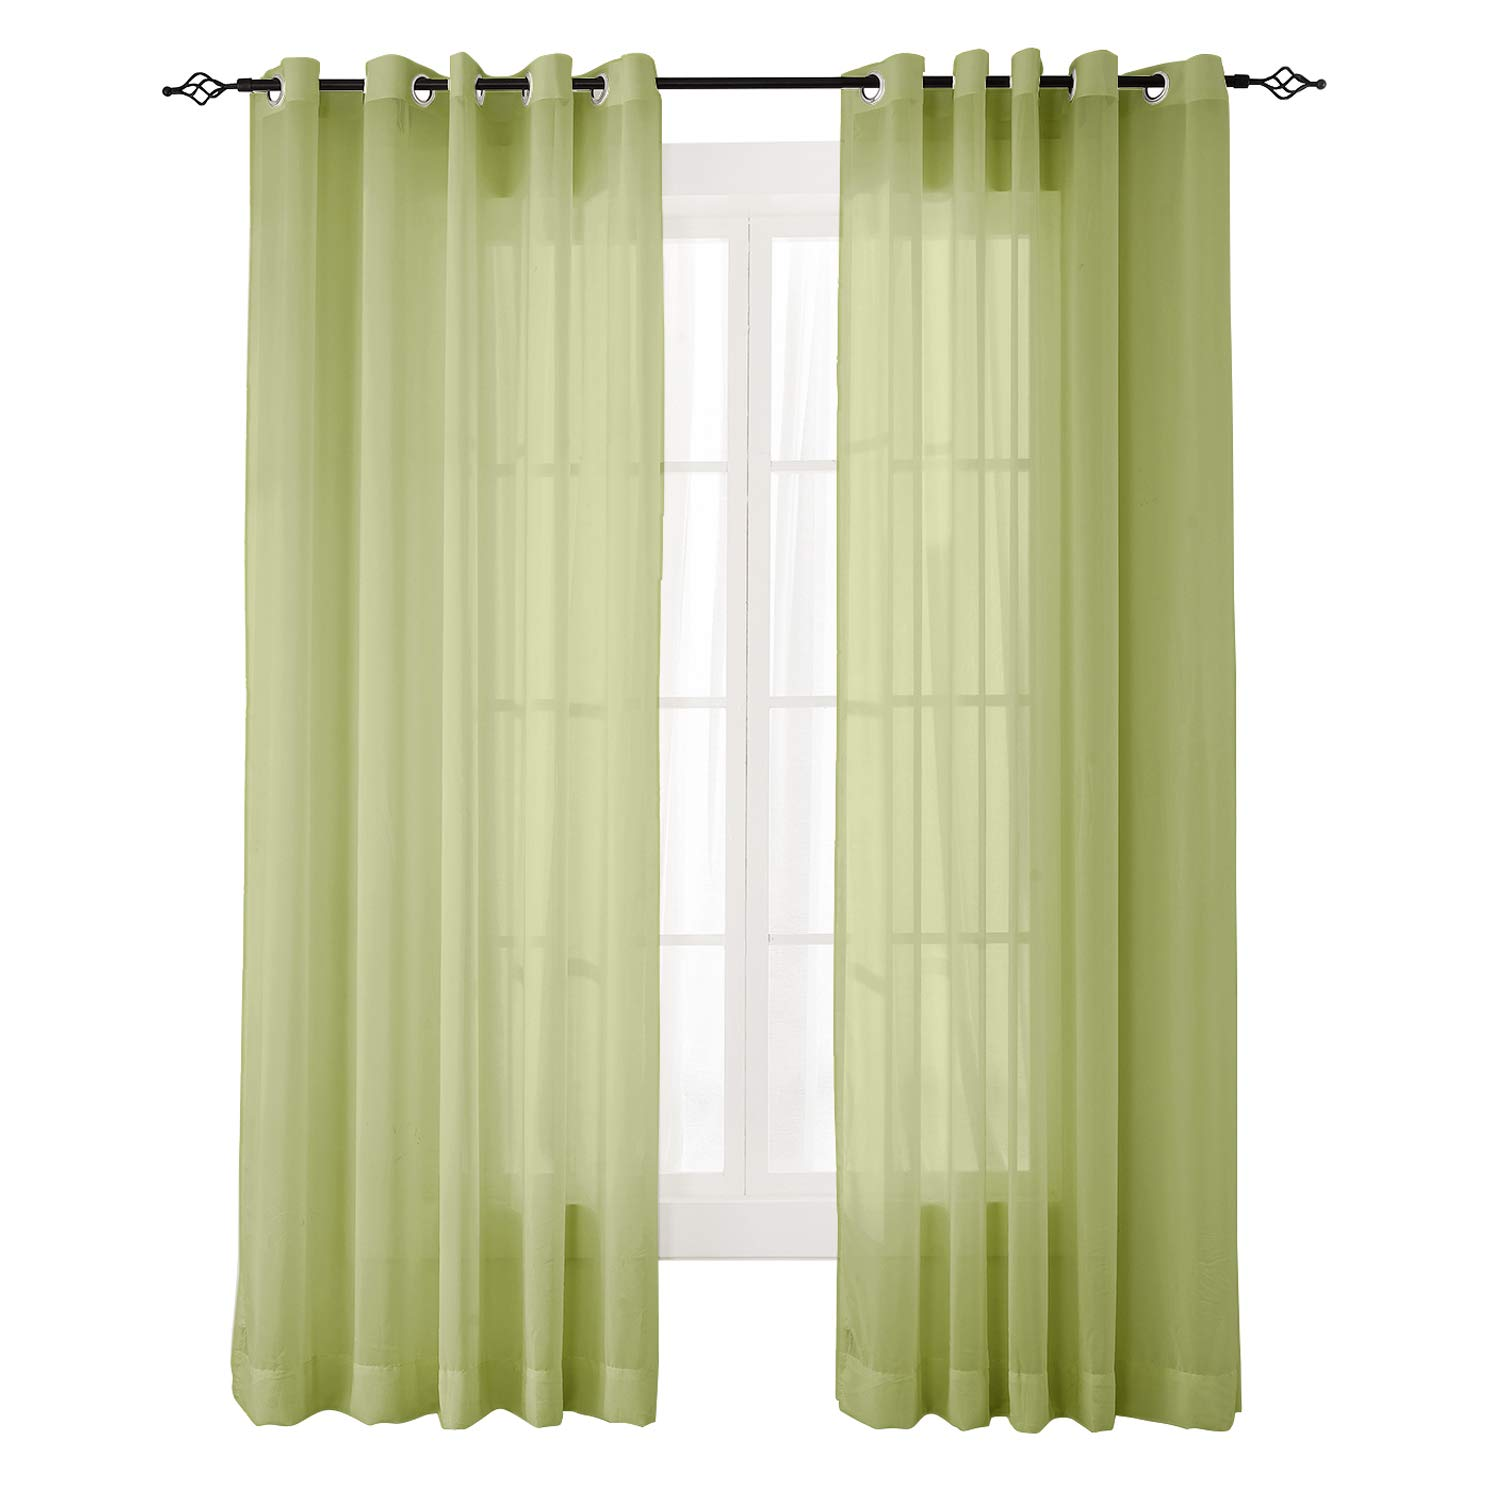 "ChadMade Indoor Outdoor Solid Sheer Curtain Nickel Grommet Moss 52"" W X 84"" L Wide Opulent Voile Drapes (1 Panel)"